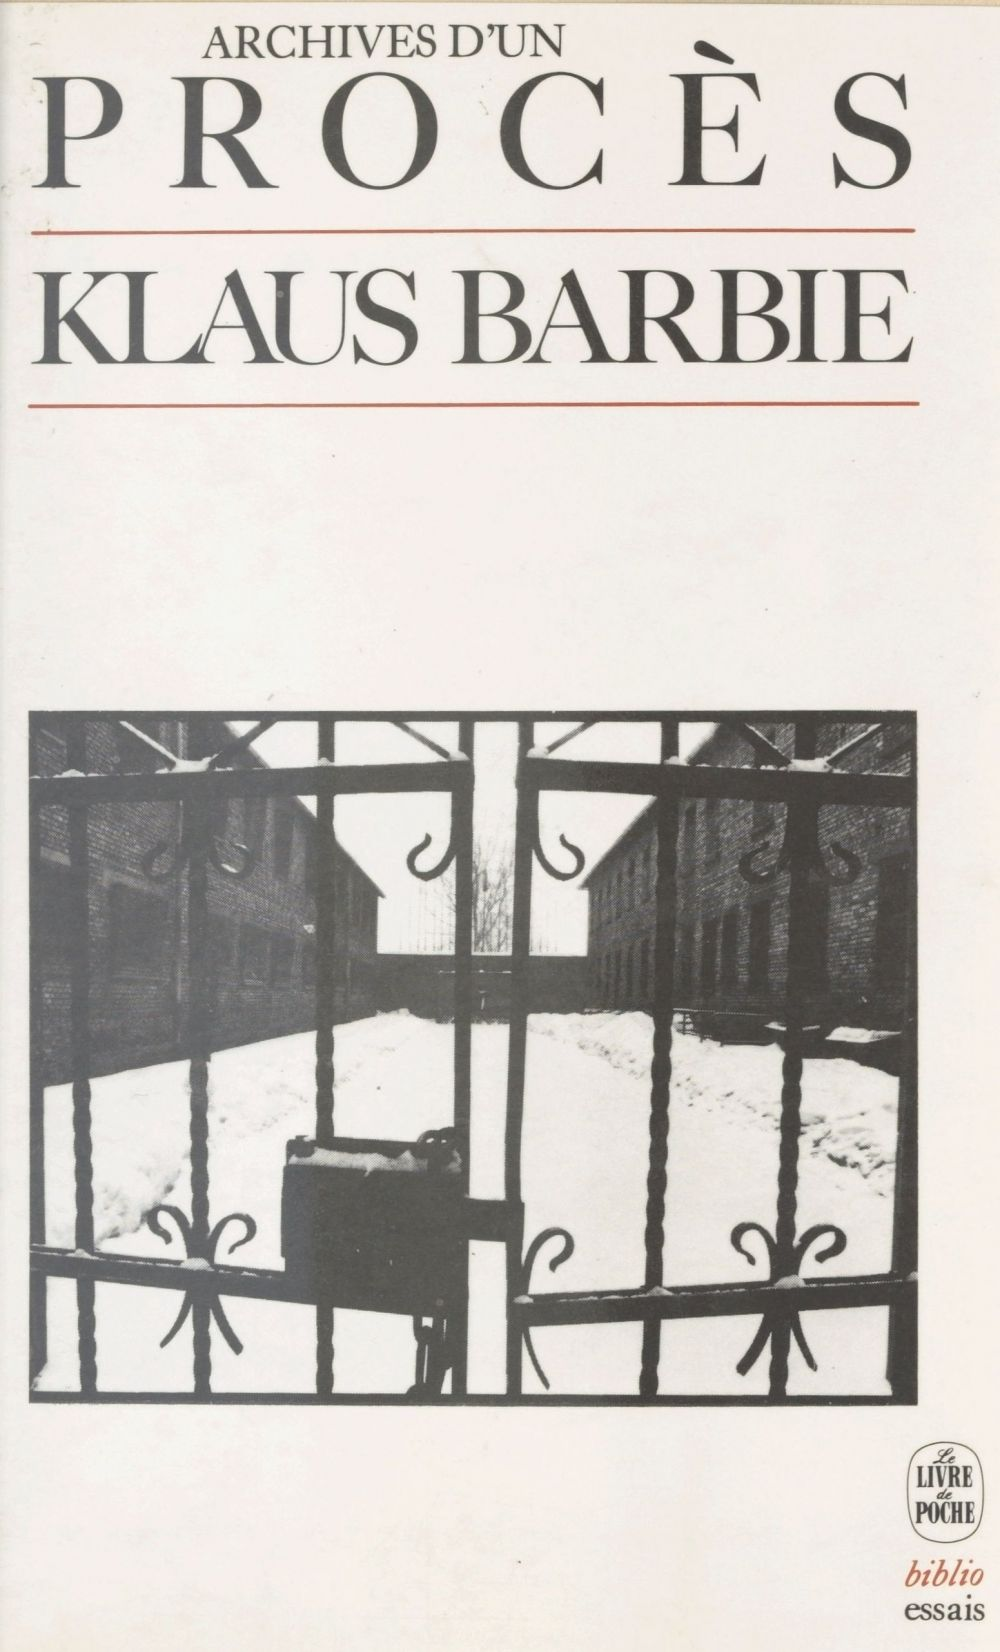 Klaus Barbie : archives d'un procès